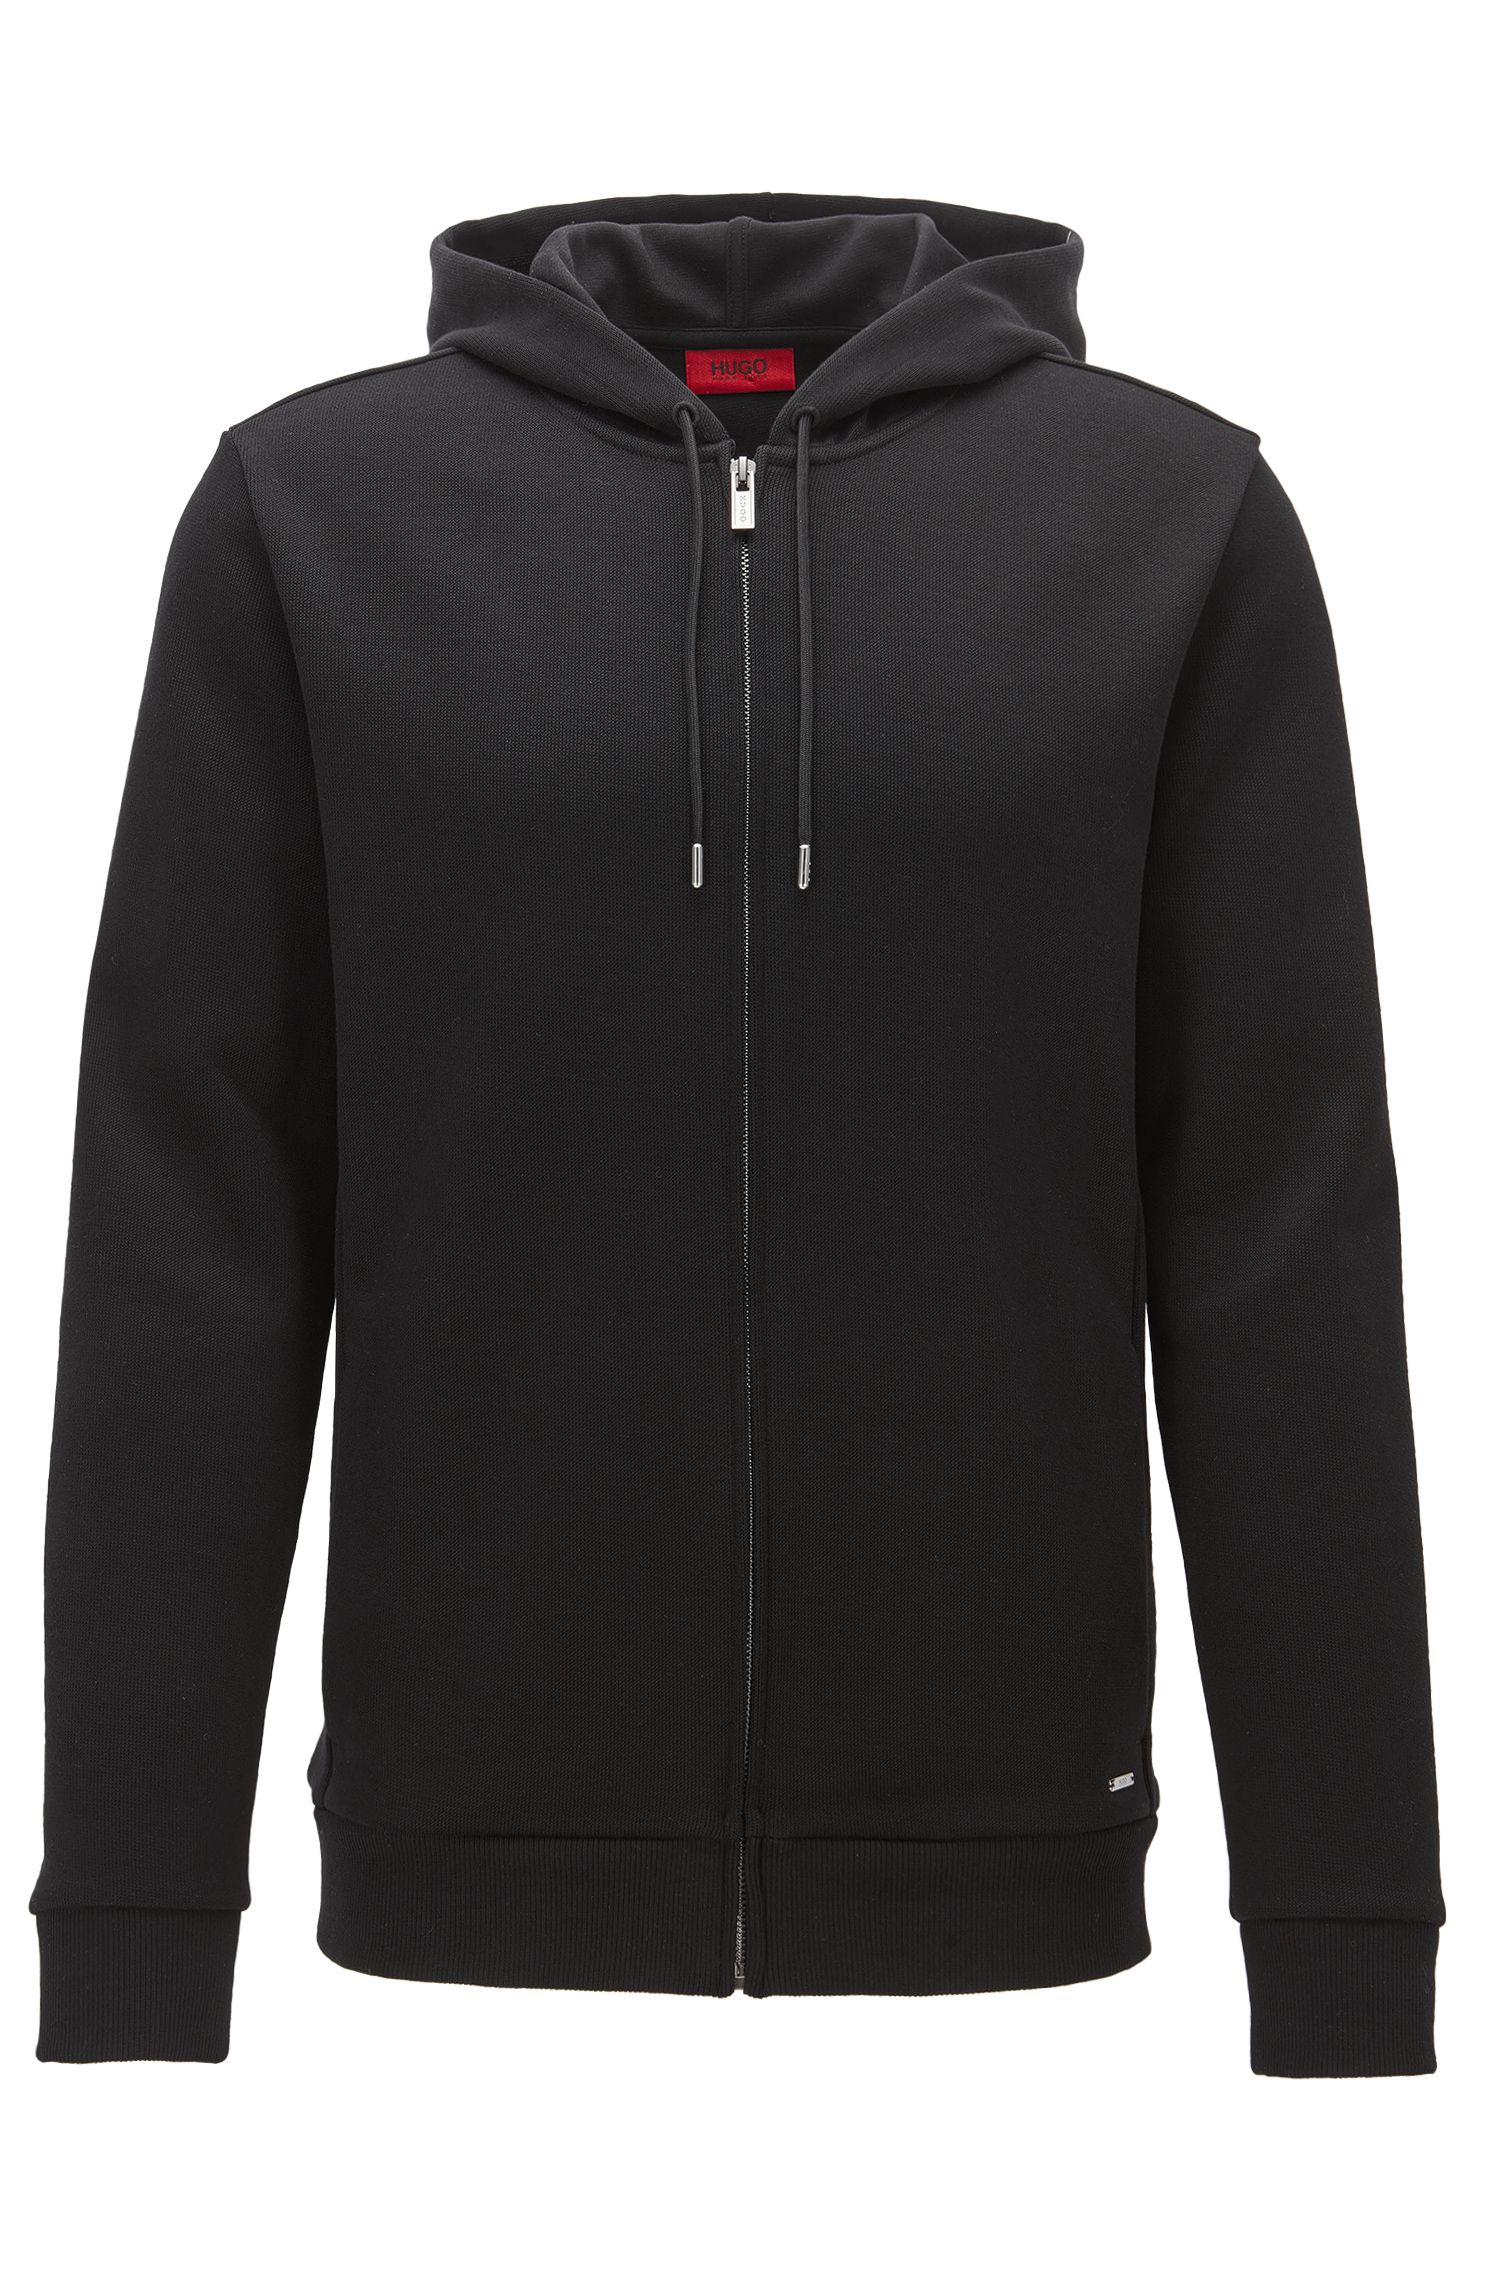 Relaxed-fit French rib zip-through hoody in cotton